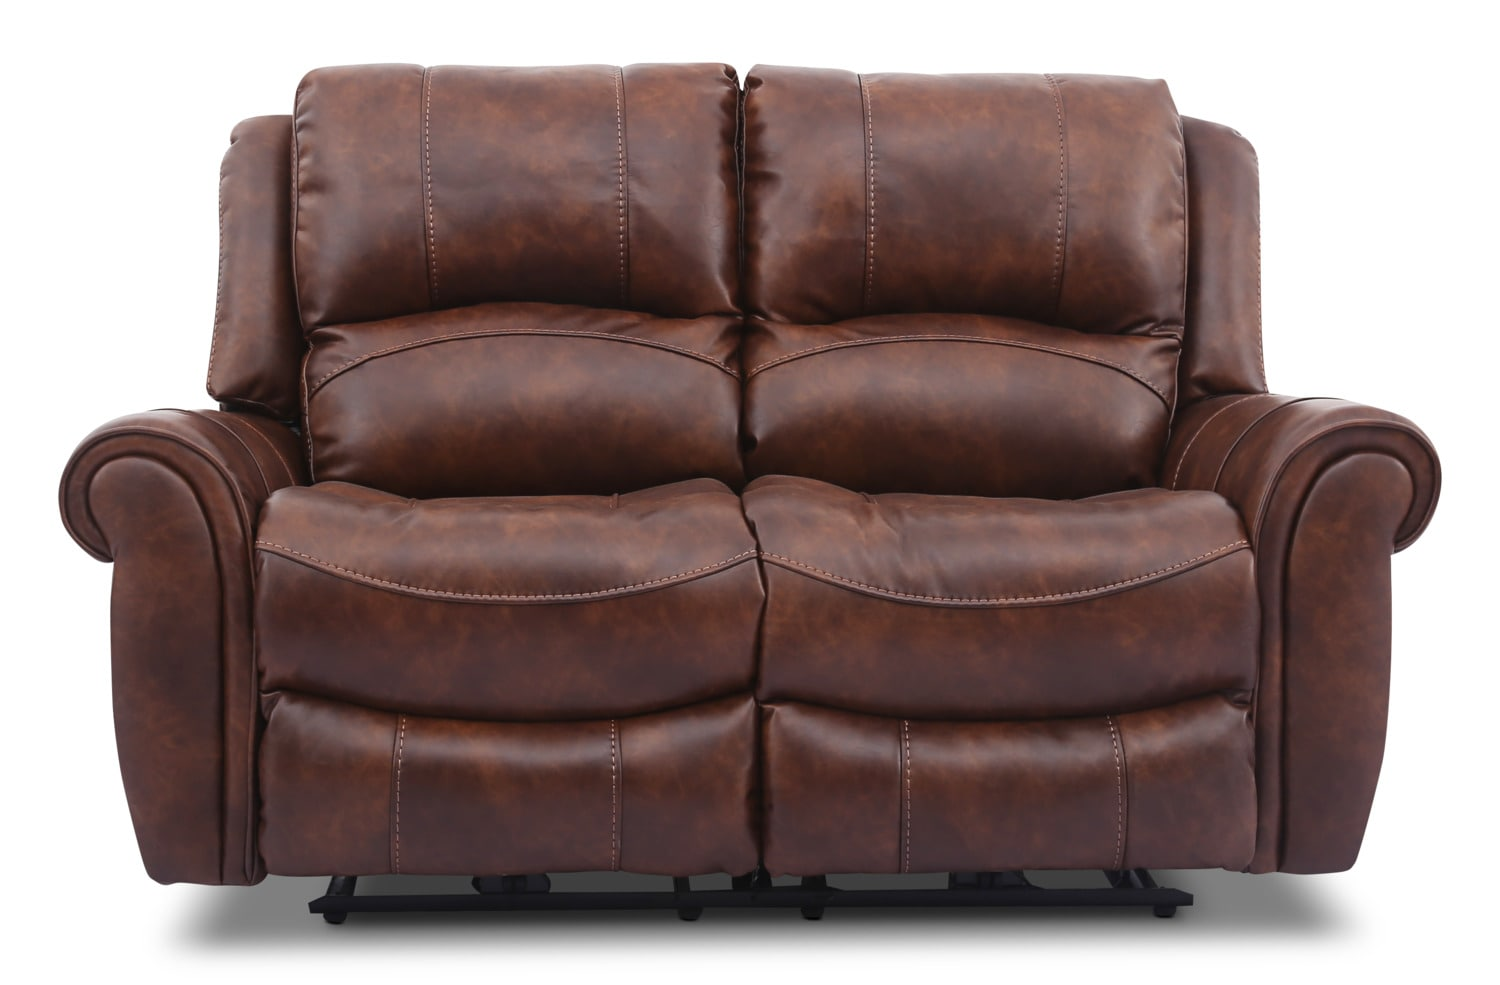 Living Room Furniture - Kane Leather-Look Fabric Power Reclining Loveseat – Pecan